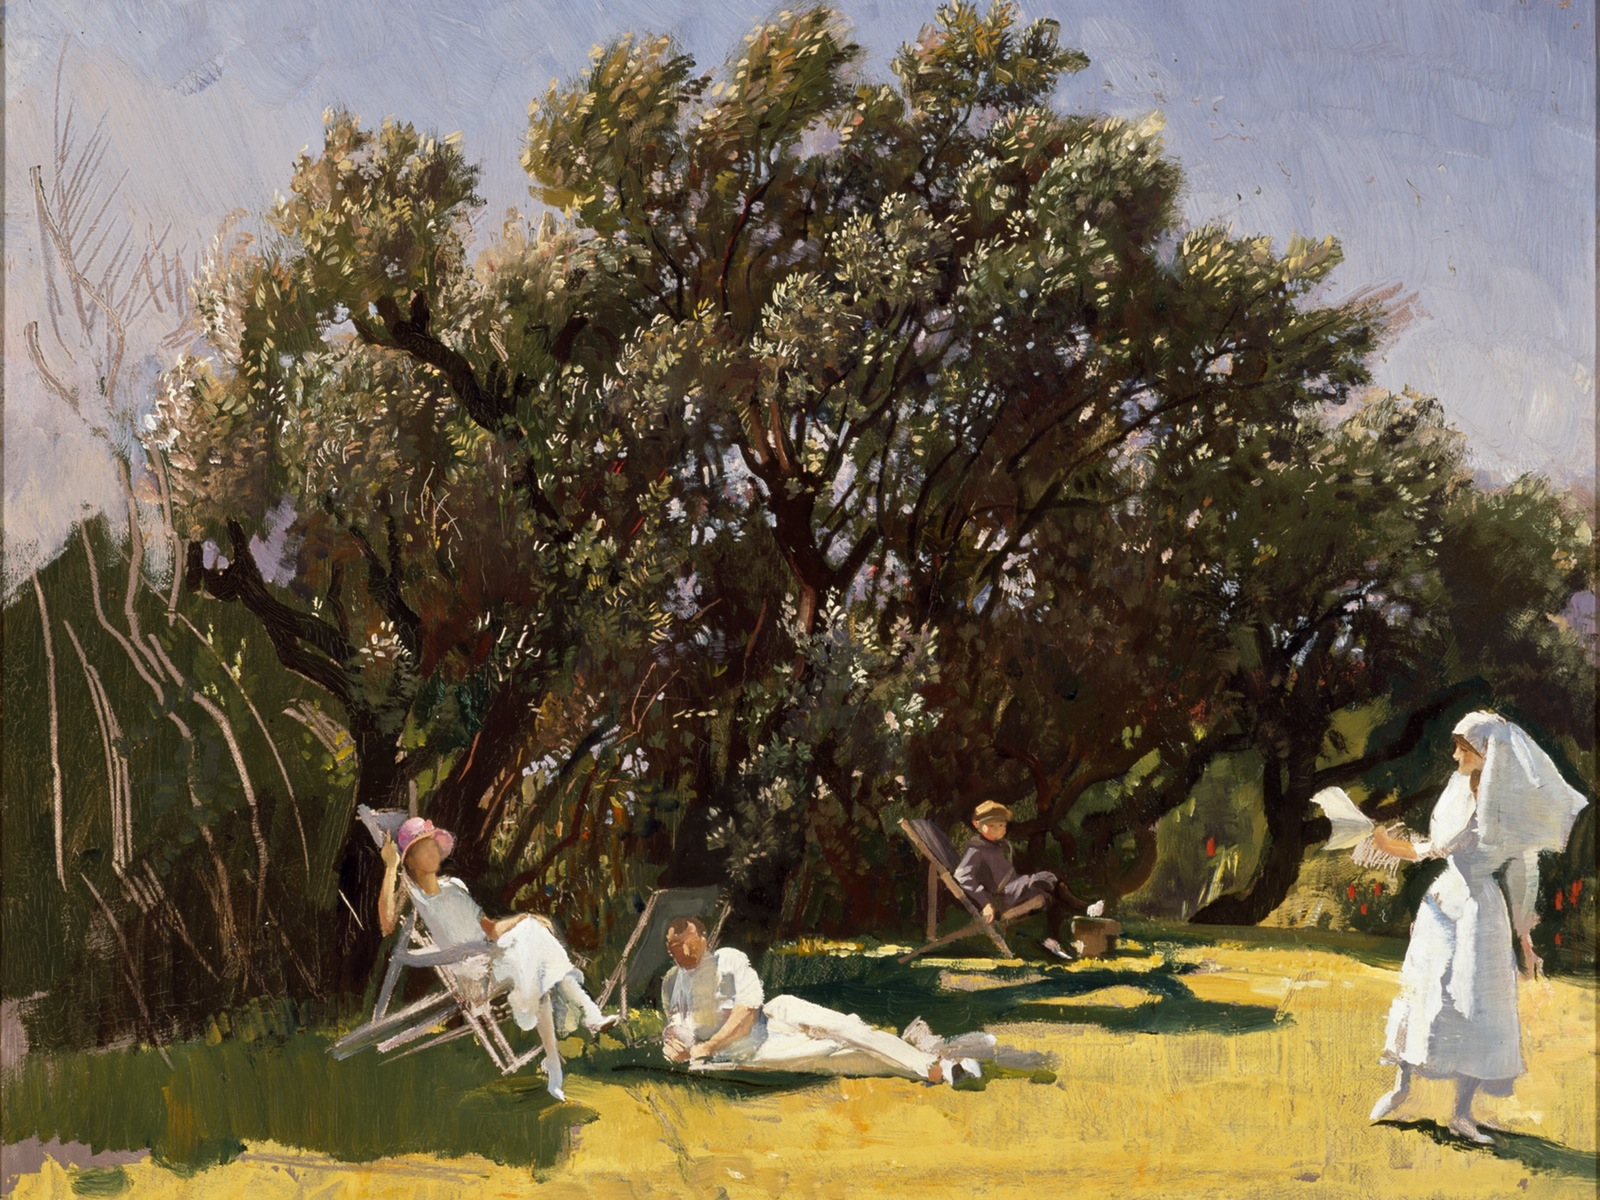 George Lambert, The garden at St Luke's Hospital 1922-23, oil on canvas